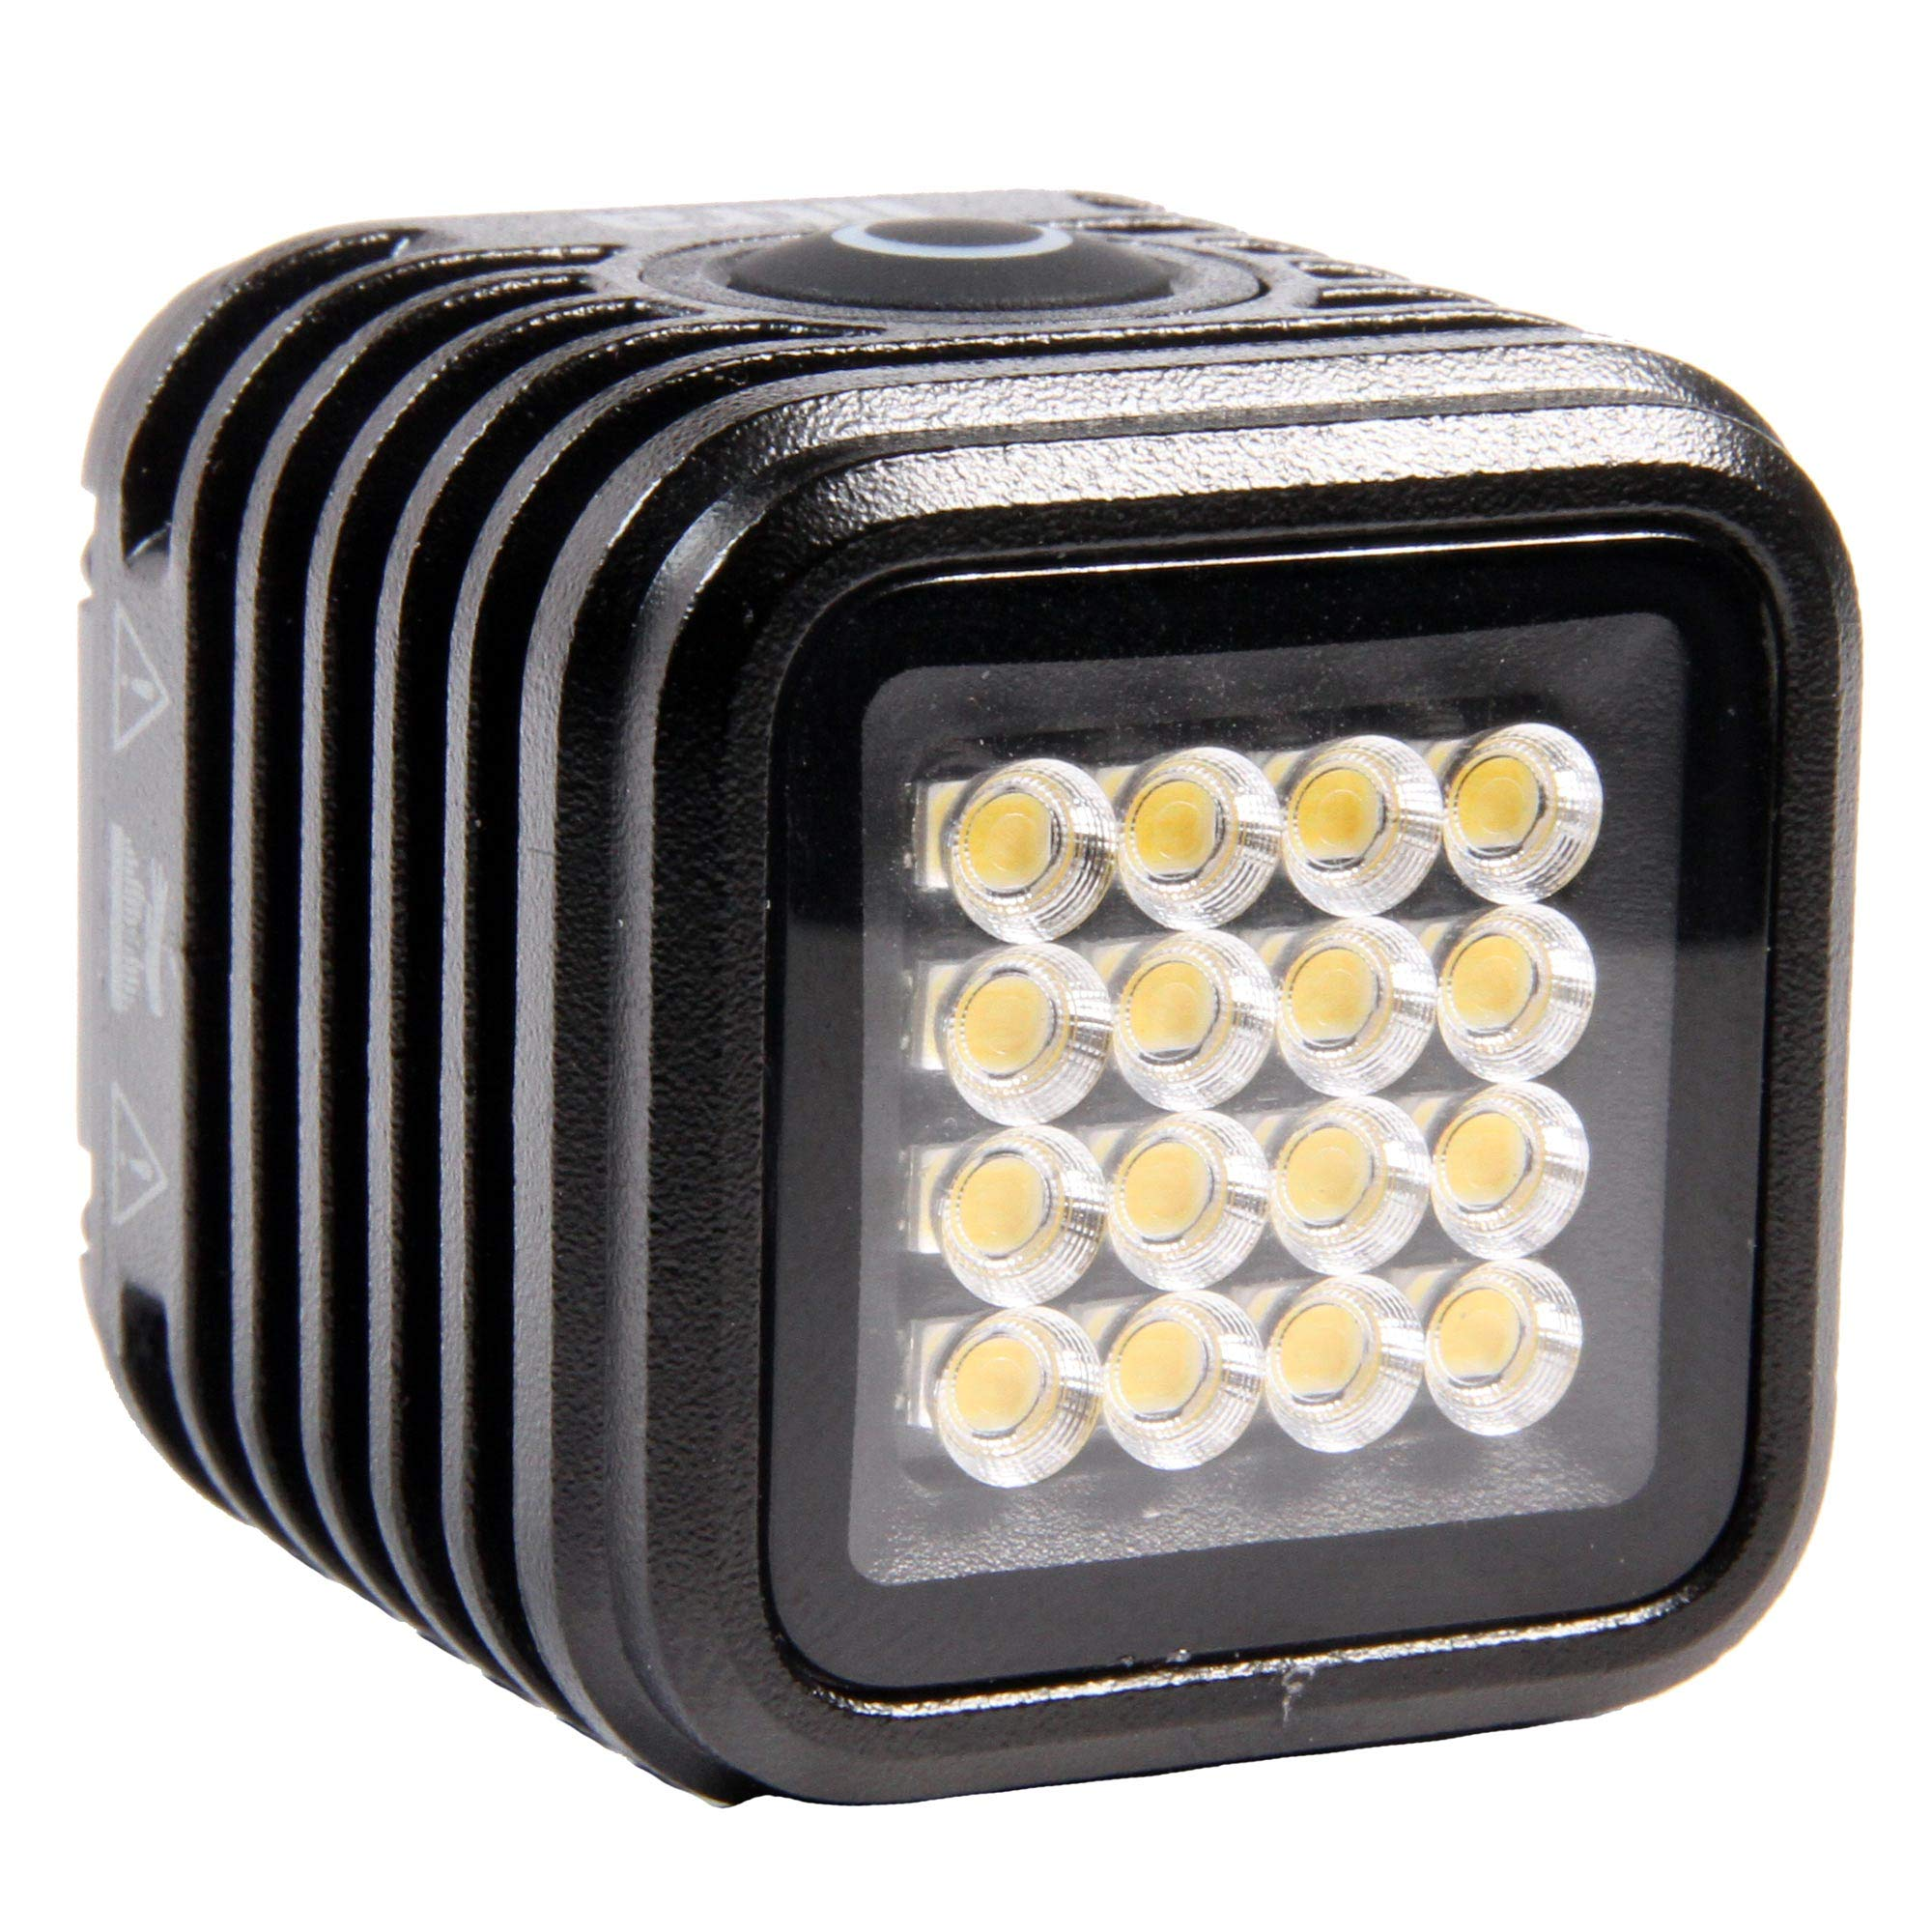 LitraTorch 2.0 Premium On-Camera Photo and Video Waterproof LED Light by Litra